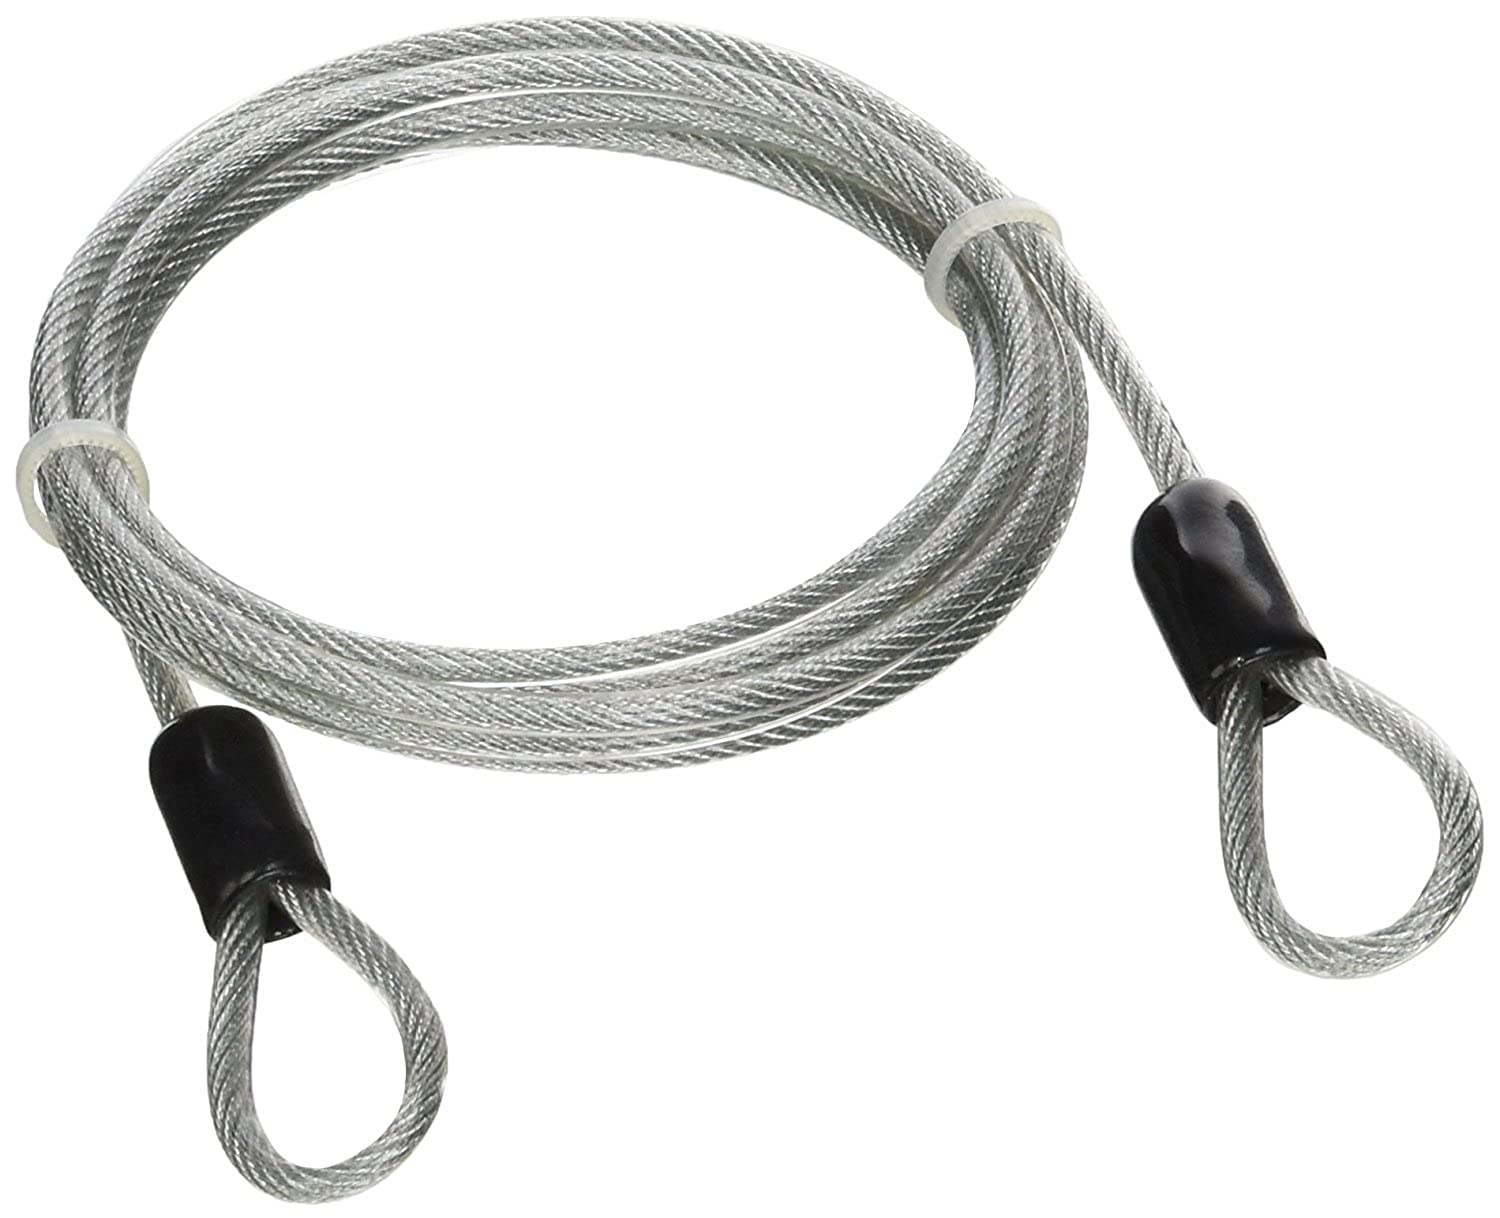 Amazon.com: Lumintrail 4 Foot 3mm Braided Steel Coated Security ...